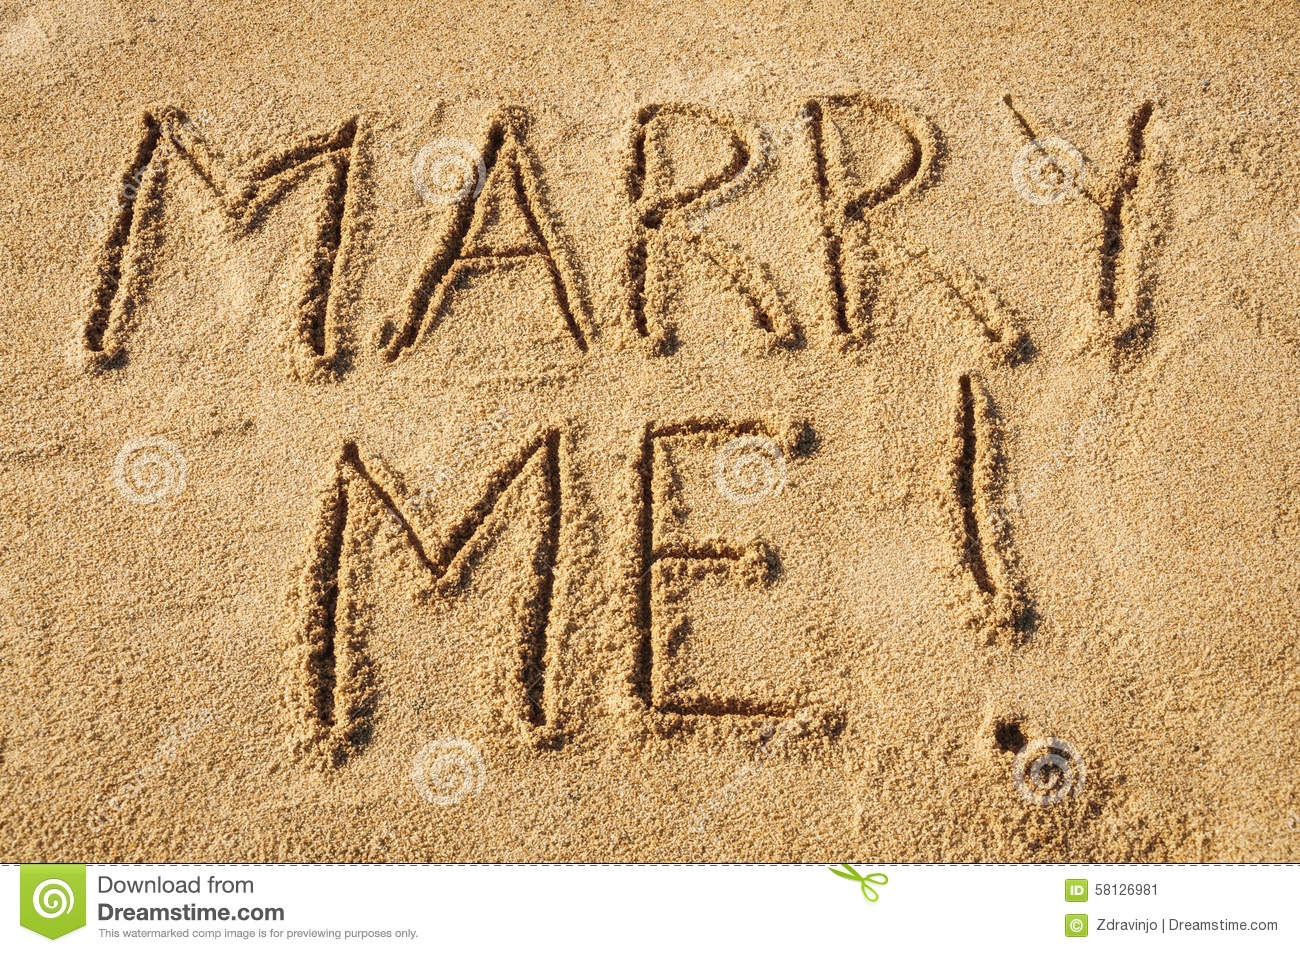 Marry Me! Stock Photo - Image: 58126981